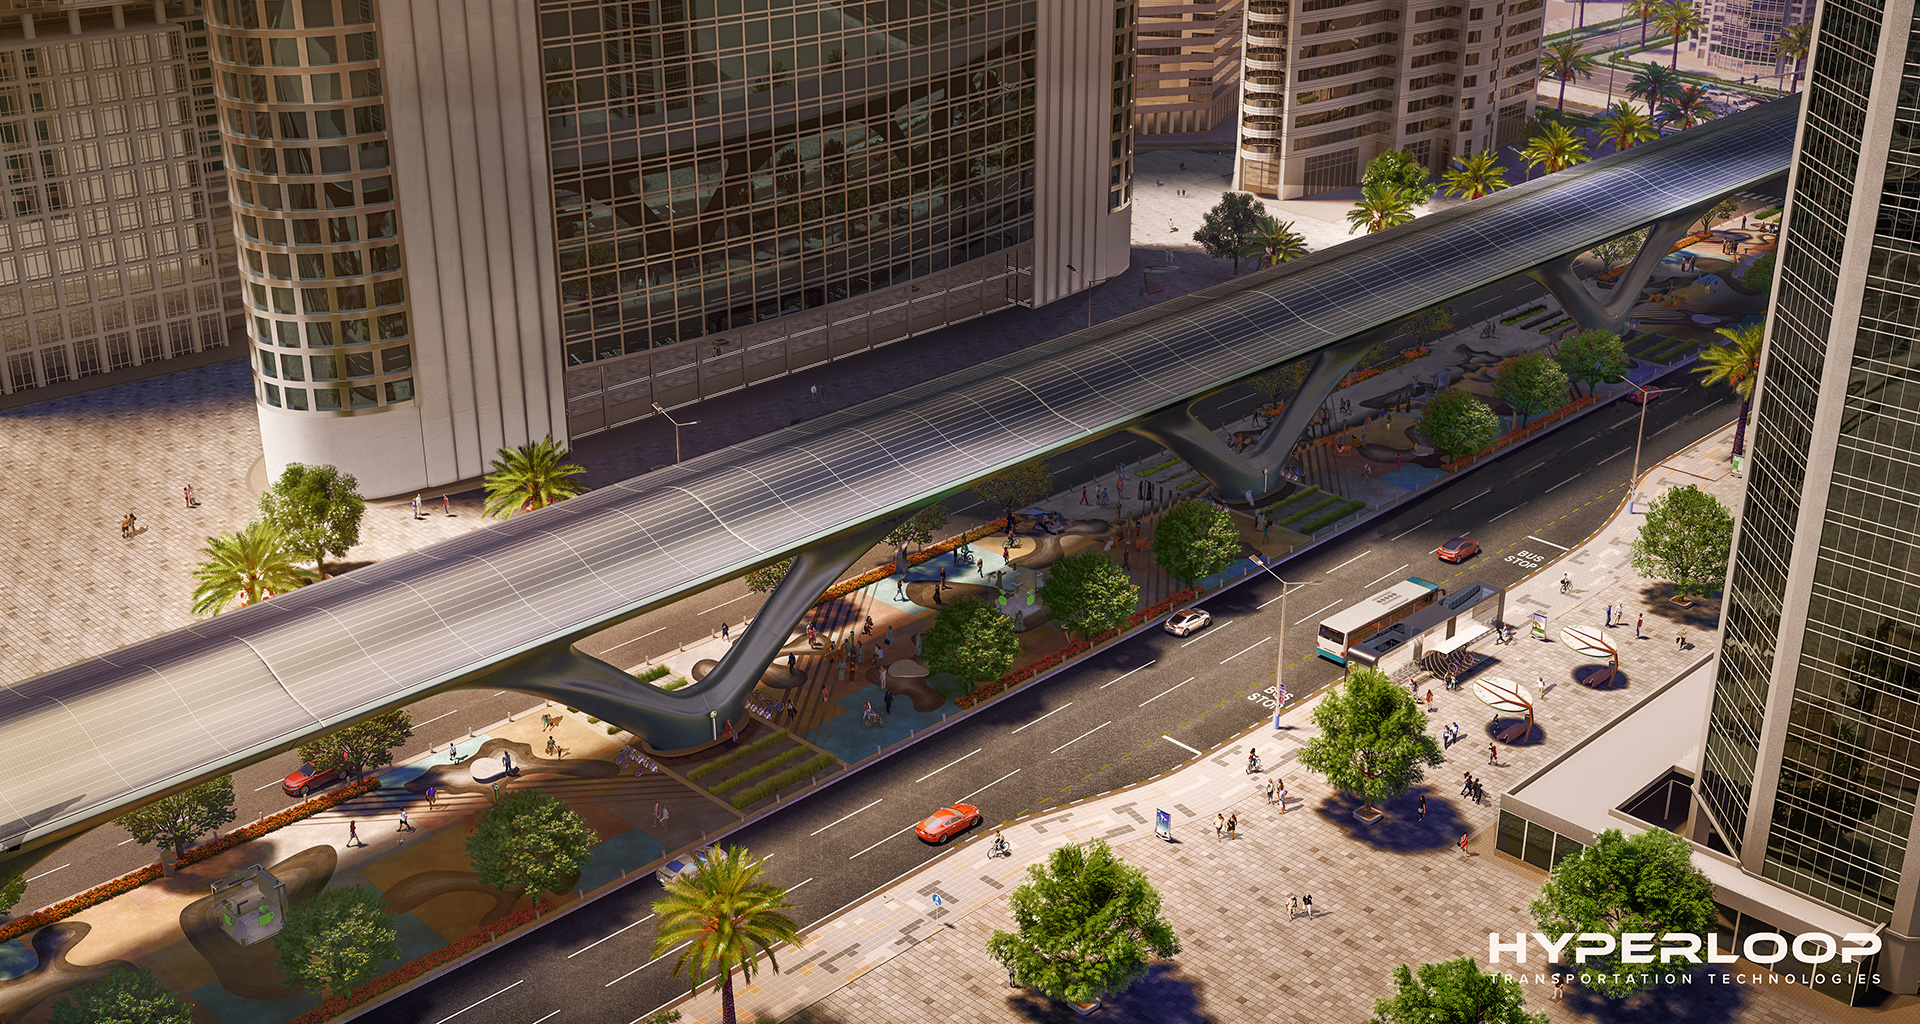 A sustainable model of future mobility in the form of low pressure, hyper speed transportation system | Hyperloop TT | MAD Architects | STIRworld